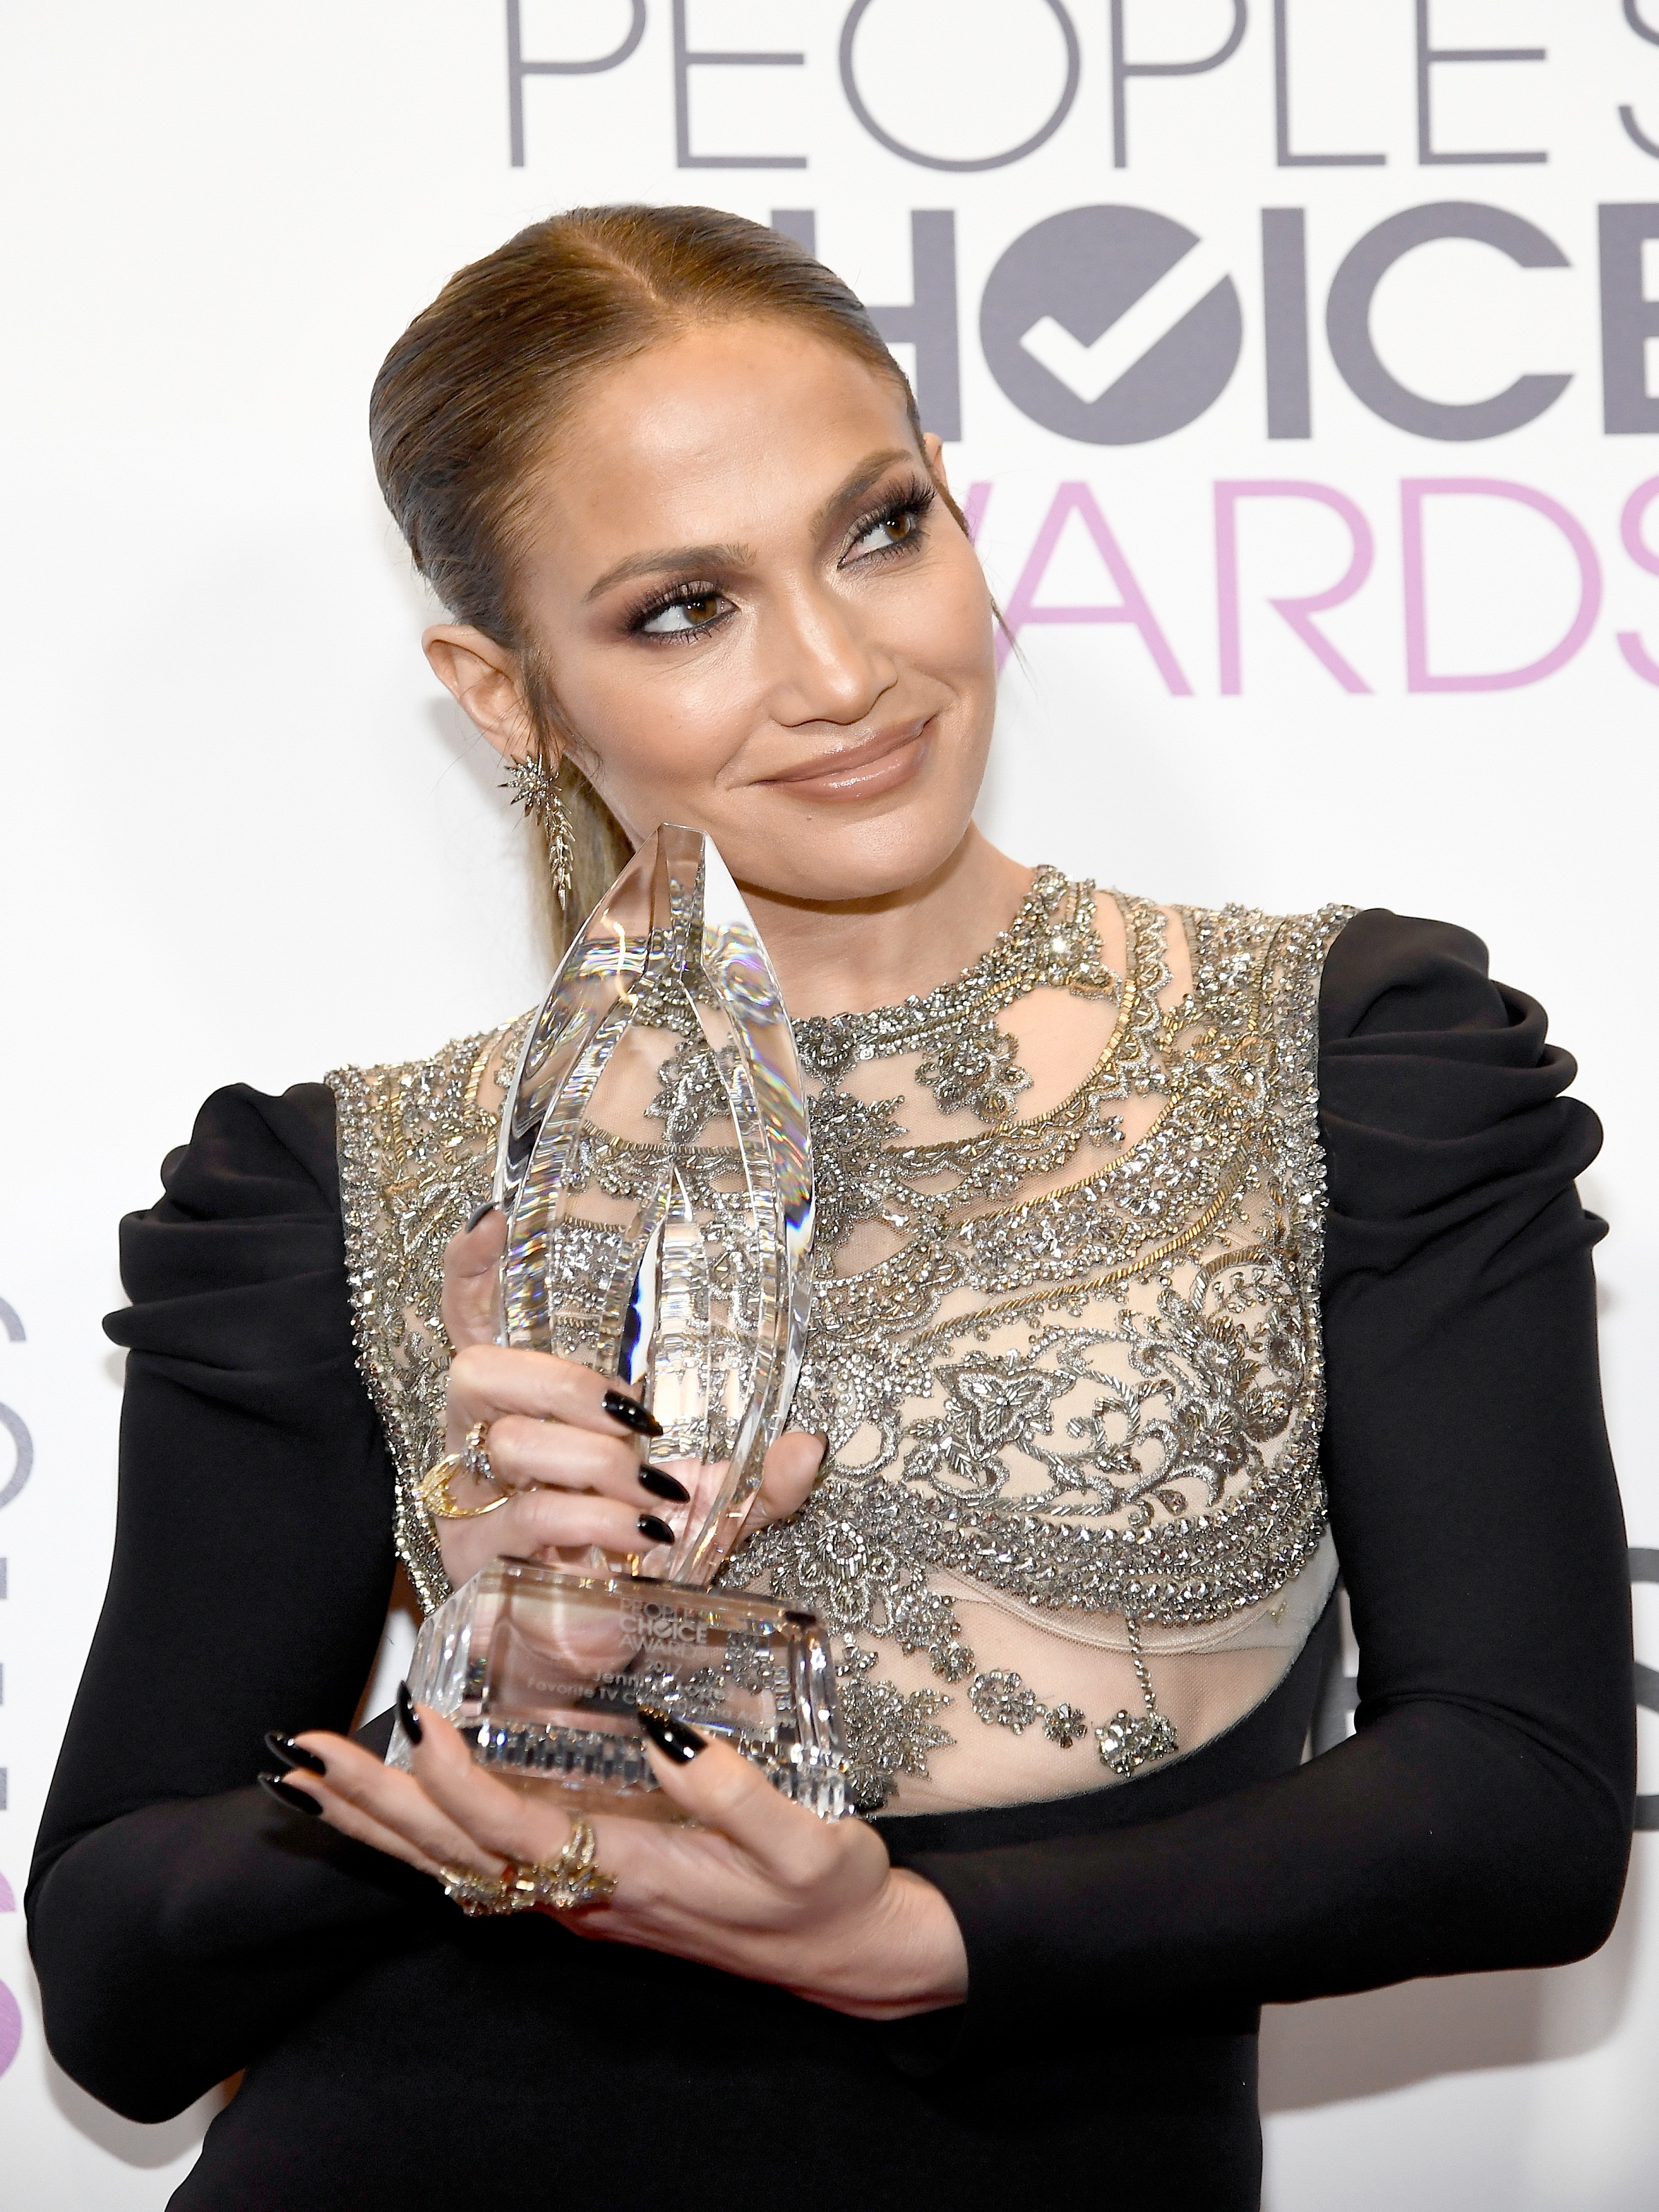 """LOS ANGELES, CA - JANUARY 18: Actress/recording artist Jennifer Lopez, winner of Favorite TV Crime Drama Actress award for """"Shades of Blue"""" poses in the press room at the People's Choice Awards 2017 at Microsoft Theater on January 18, 2017 in Los Angeles, California.   Kevork Djansezian/Getty Images/AFP"""